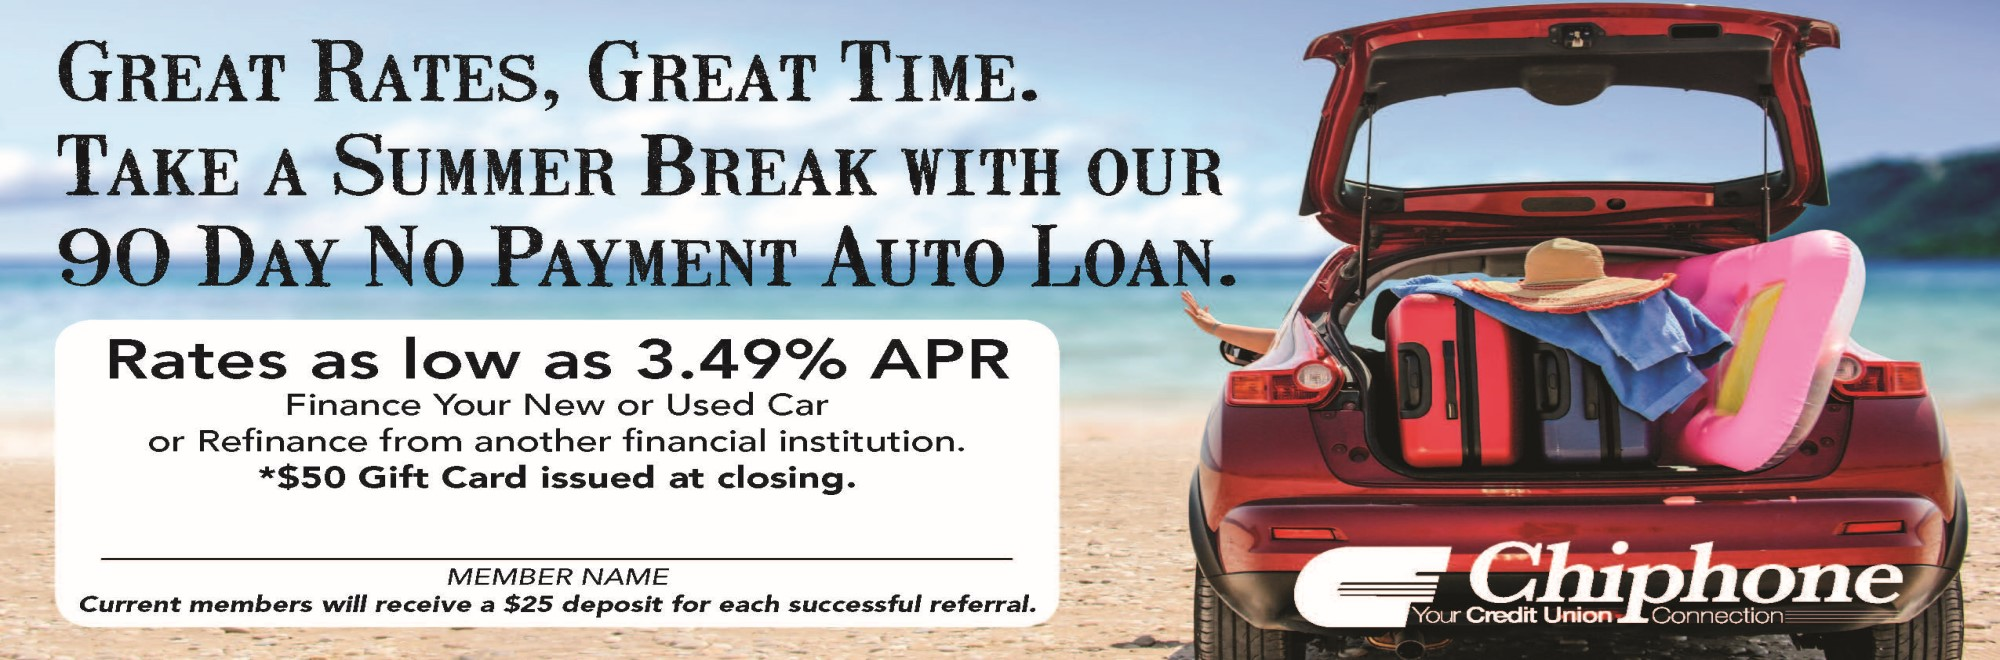 GREAT RATES, GREAT TIME AUTO LOAN SPECIAL